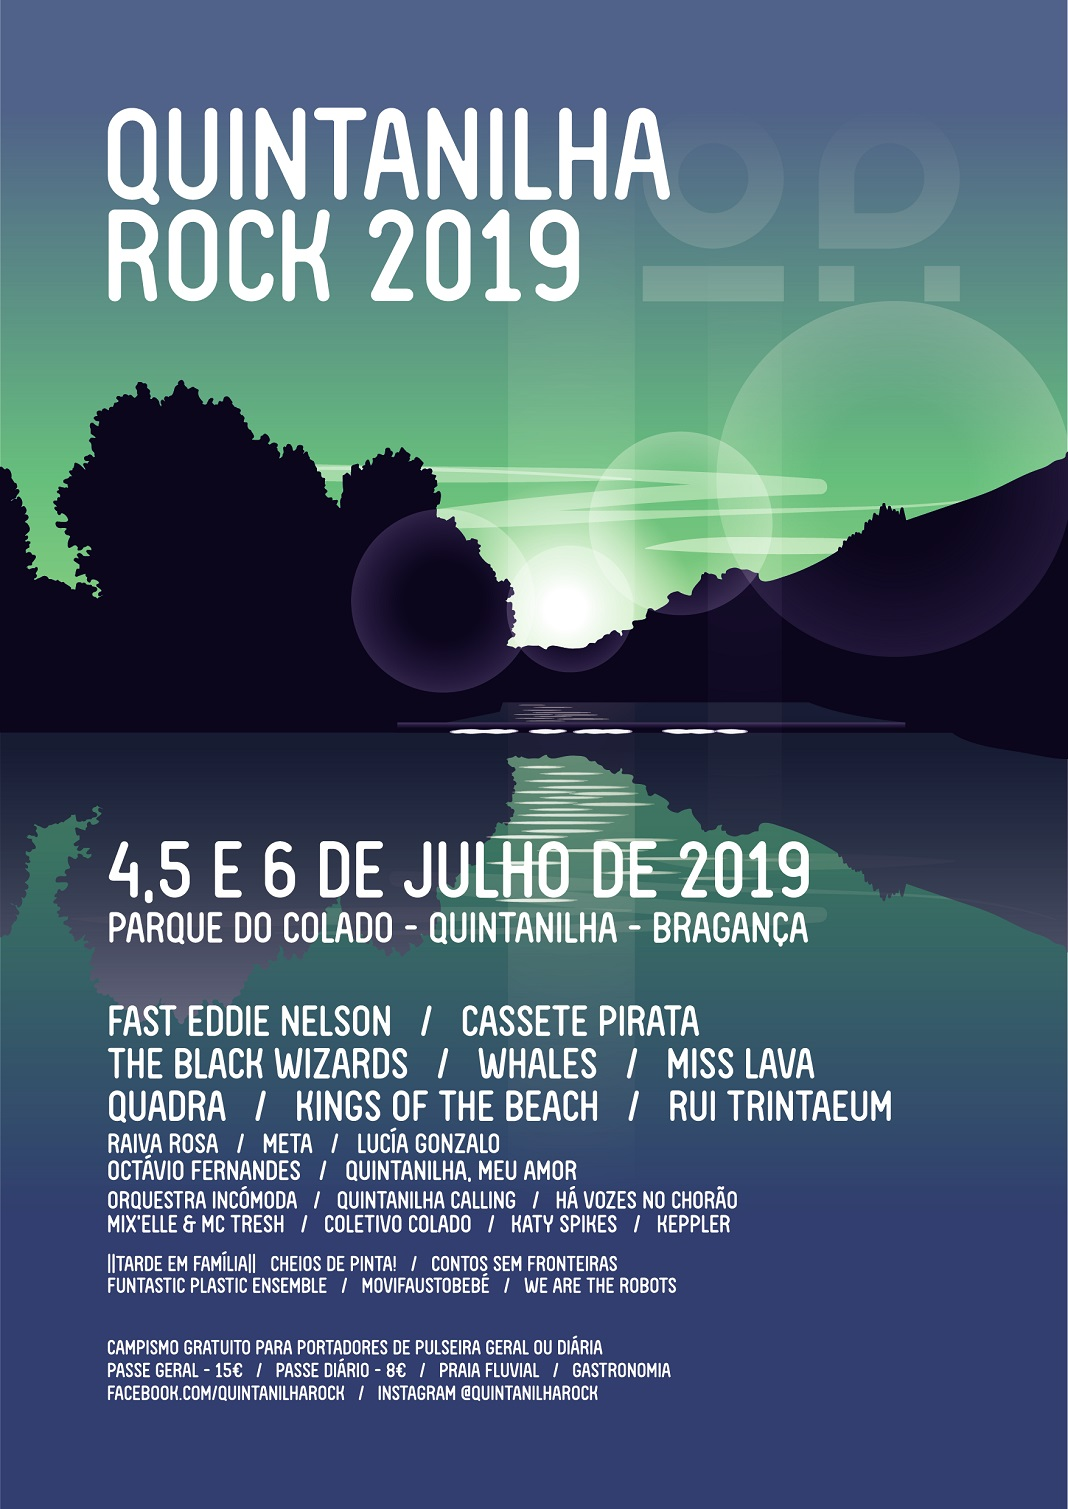 Quintanilha Rock 2019 no Parque do Colado